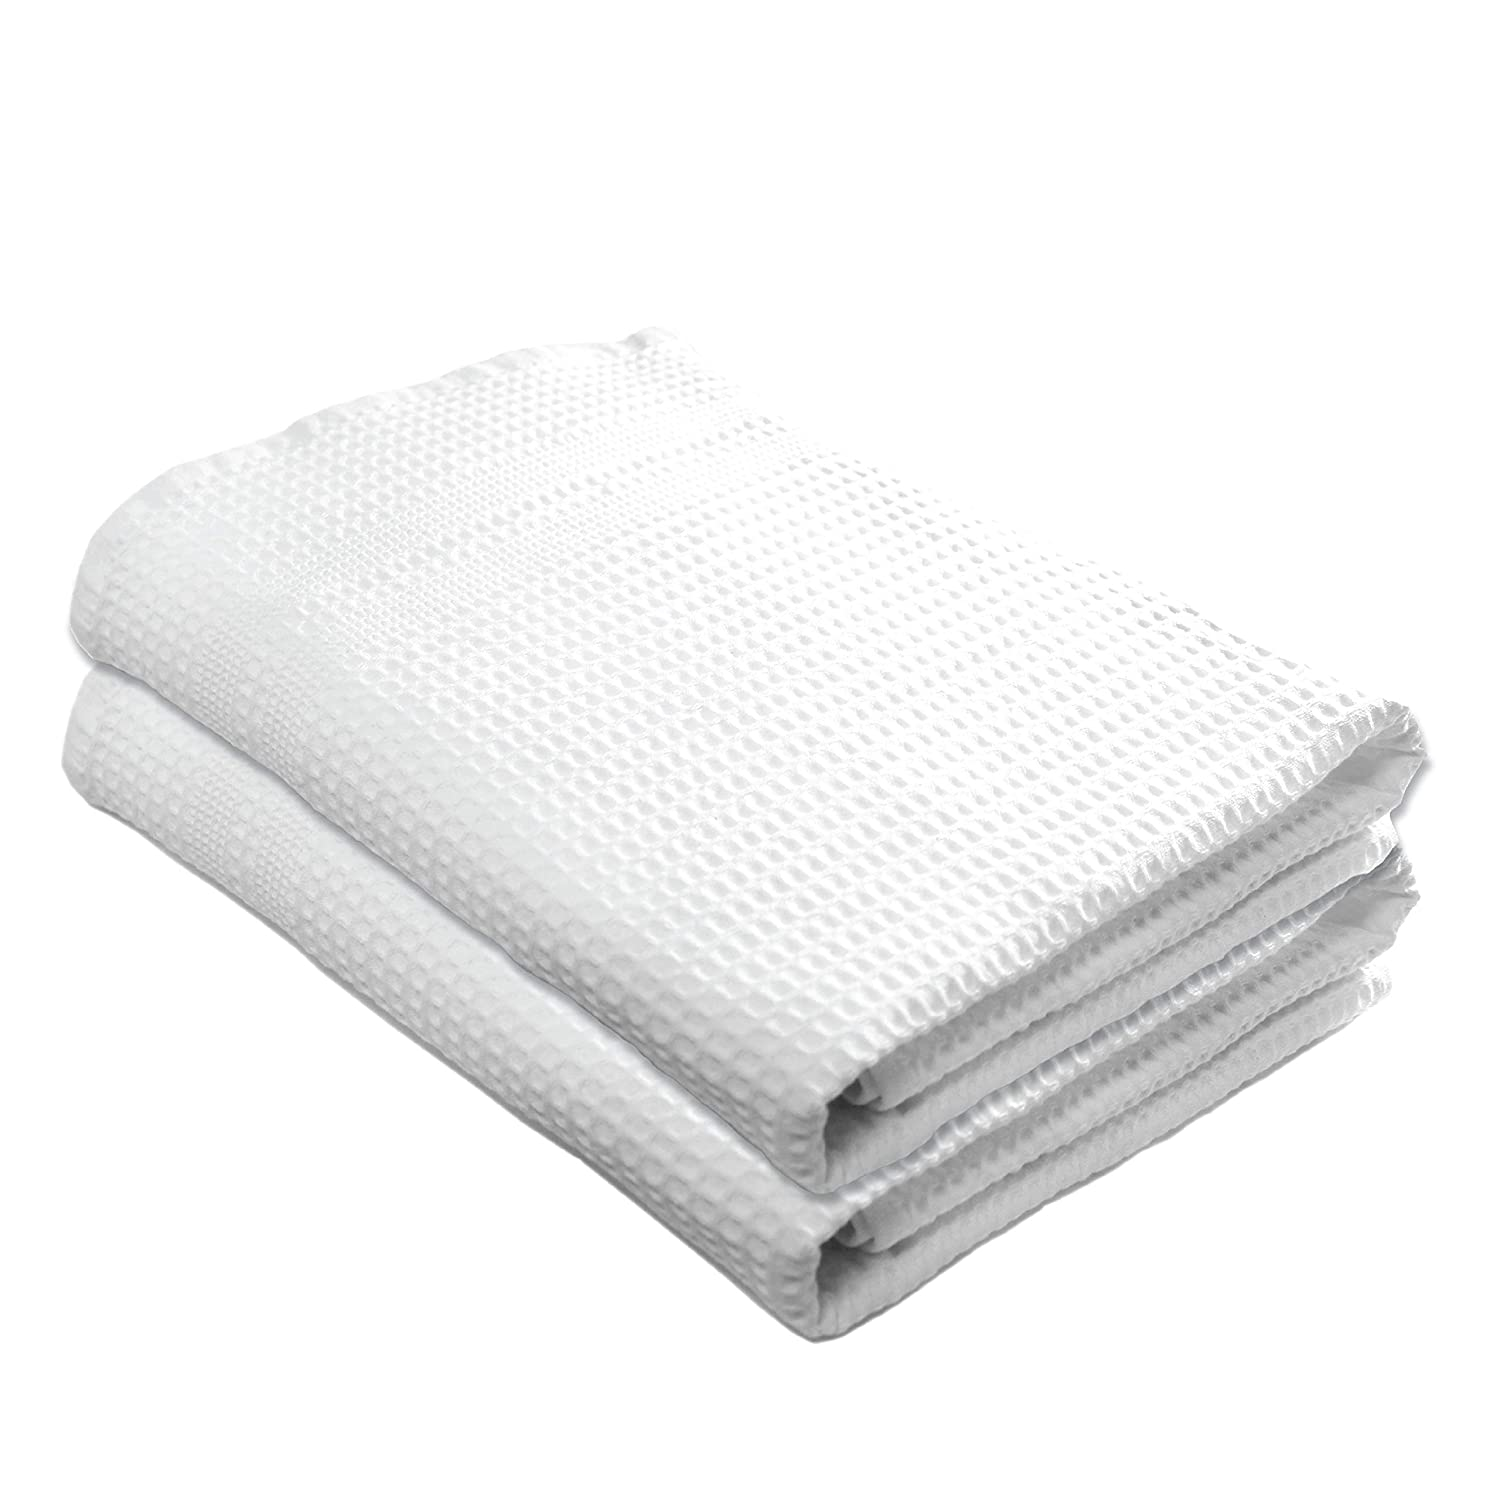 Gilden Tree Premium Bath Towels 2 Pc Set 100% Natural Cotton Quick Dry Waffle Weave Lint Free Soft Luxurious Fabric Solid Colors Oversized Thin Cloth Fade Resistant (White)